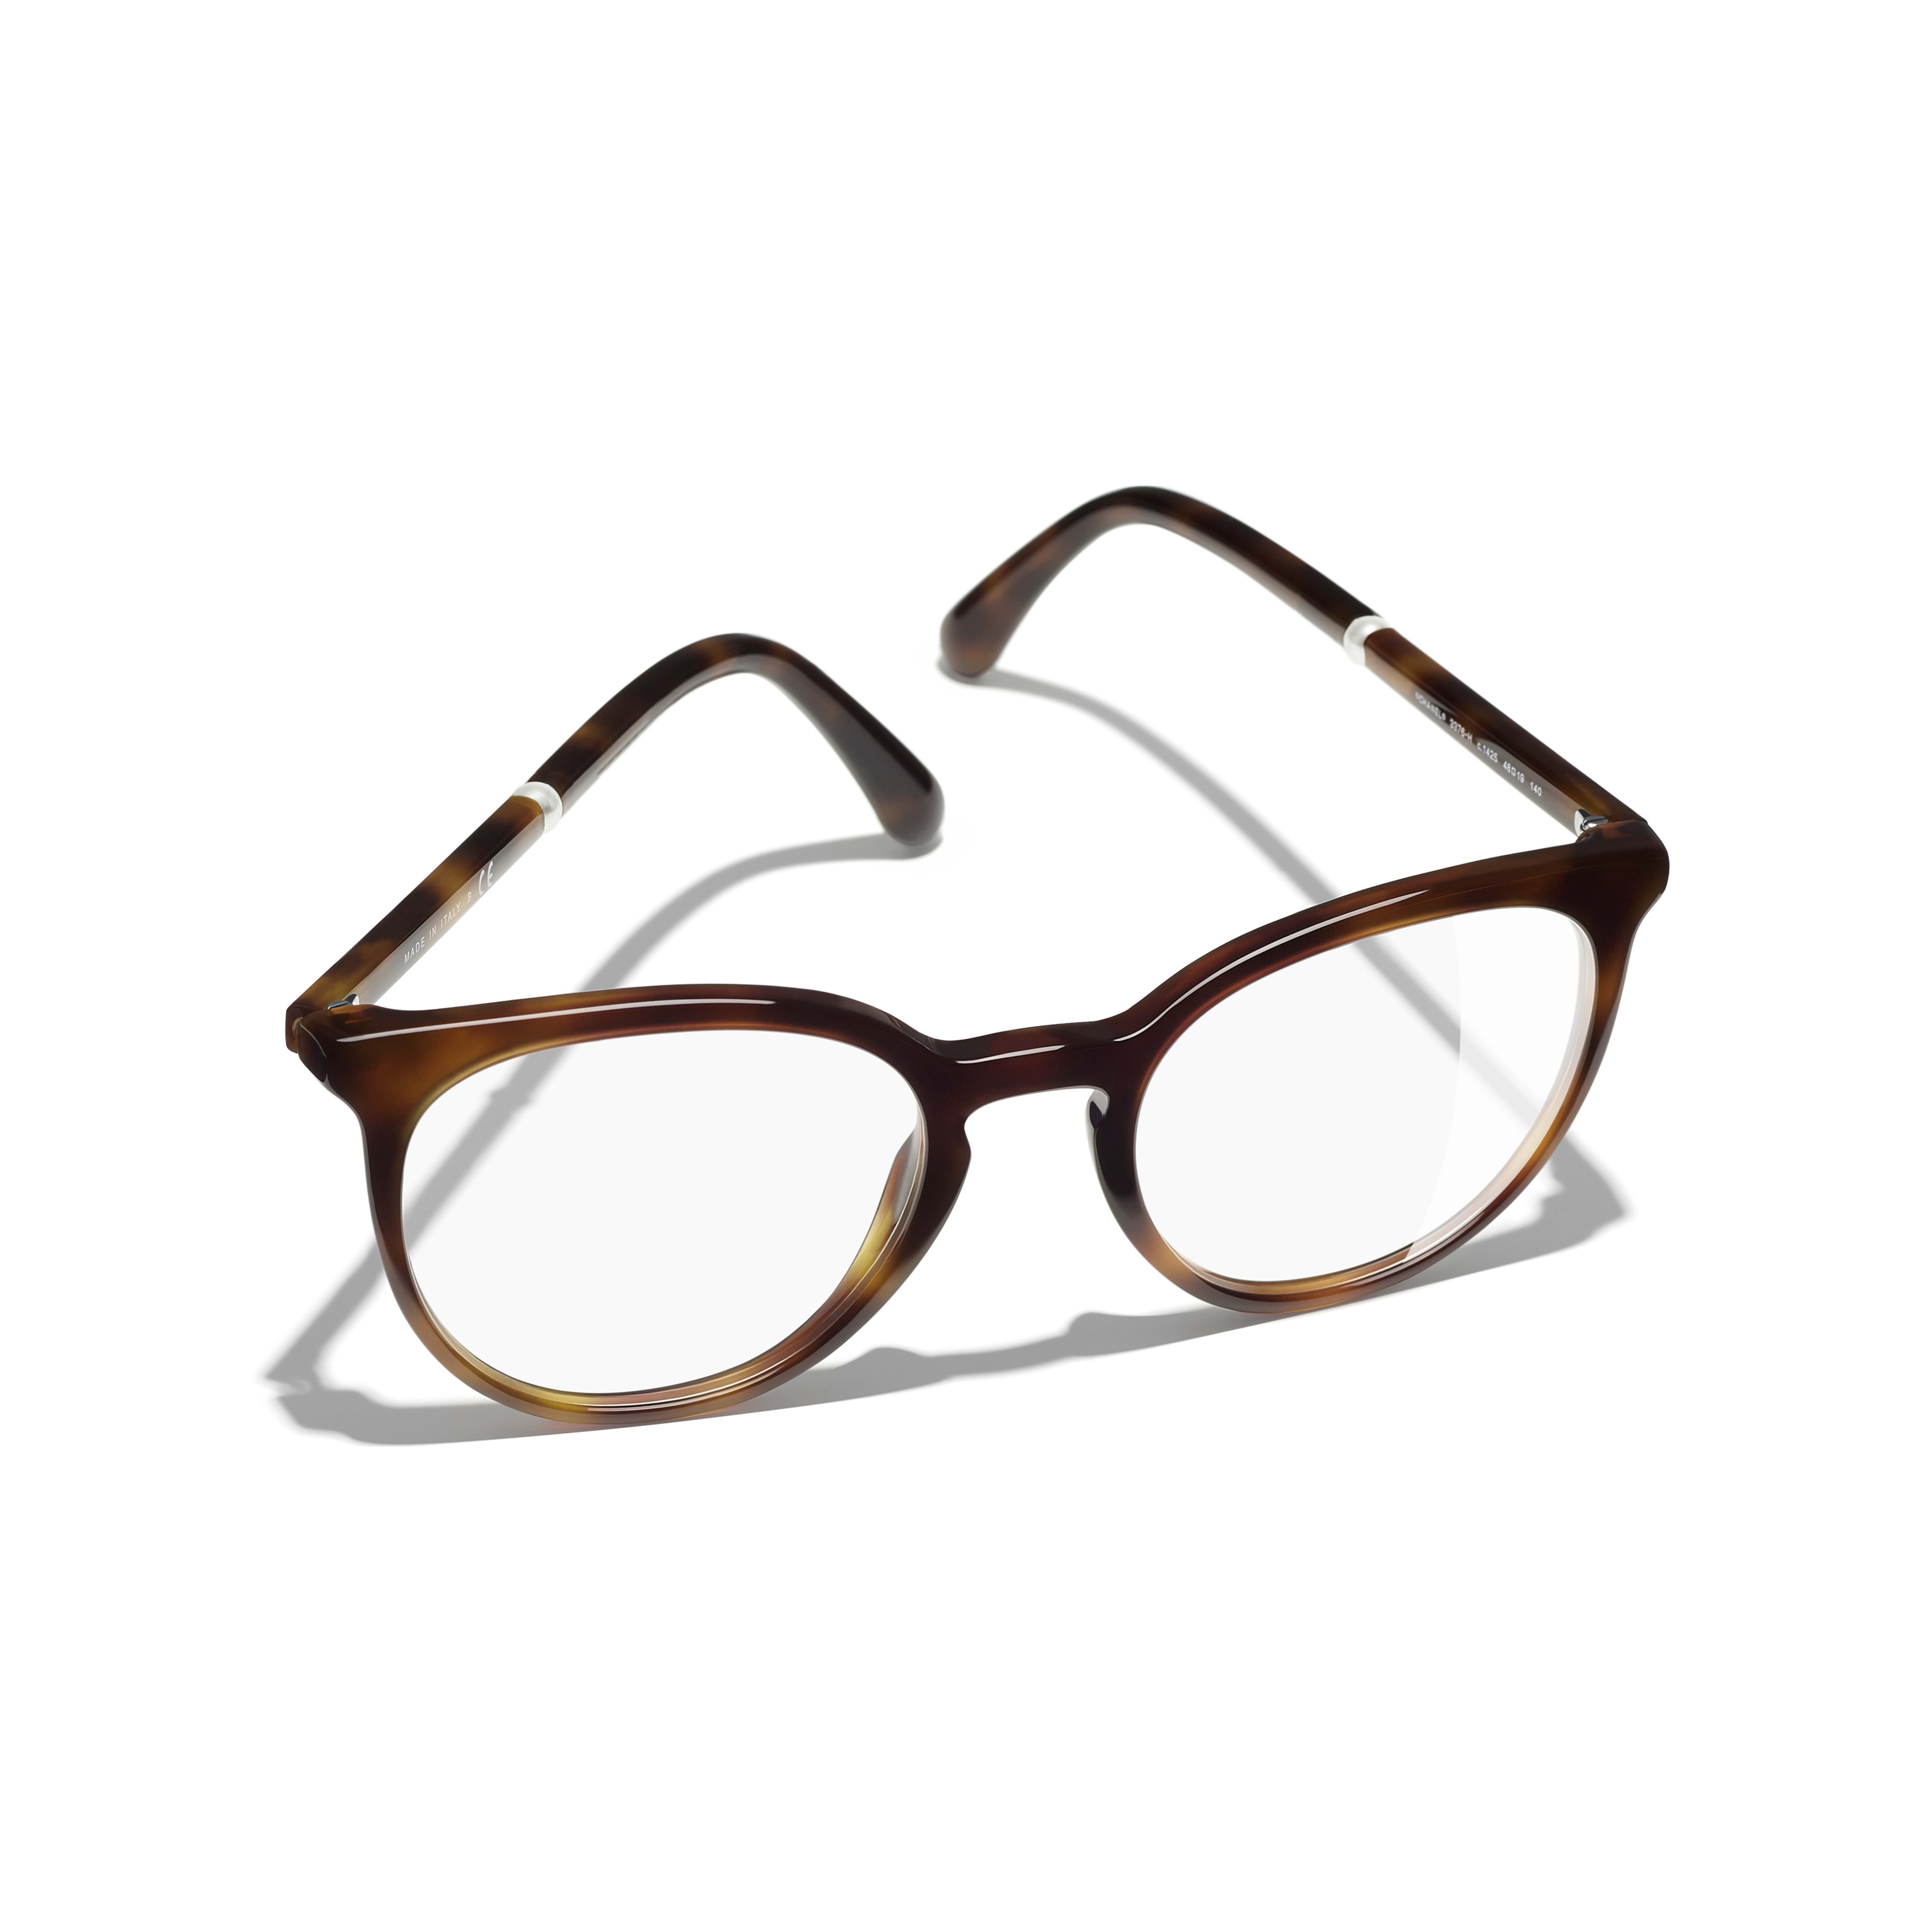 Pantos Eyeglasses - Light Tortoise - Acetate & Imitation Pearls - CHANEL - Extra view - see standard sized version